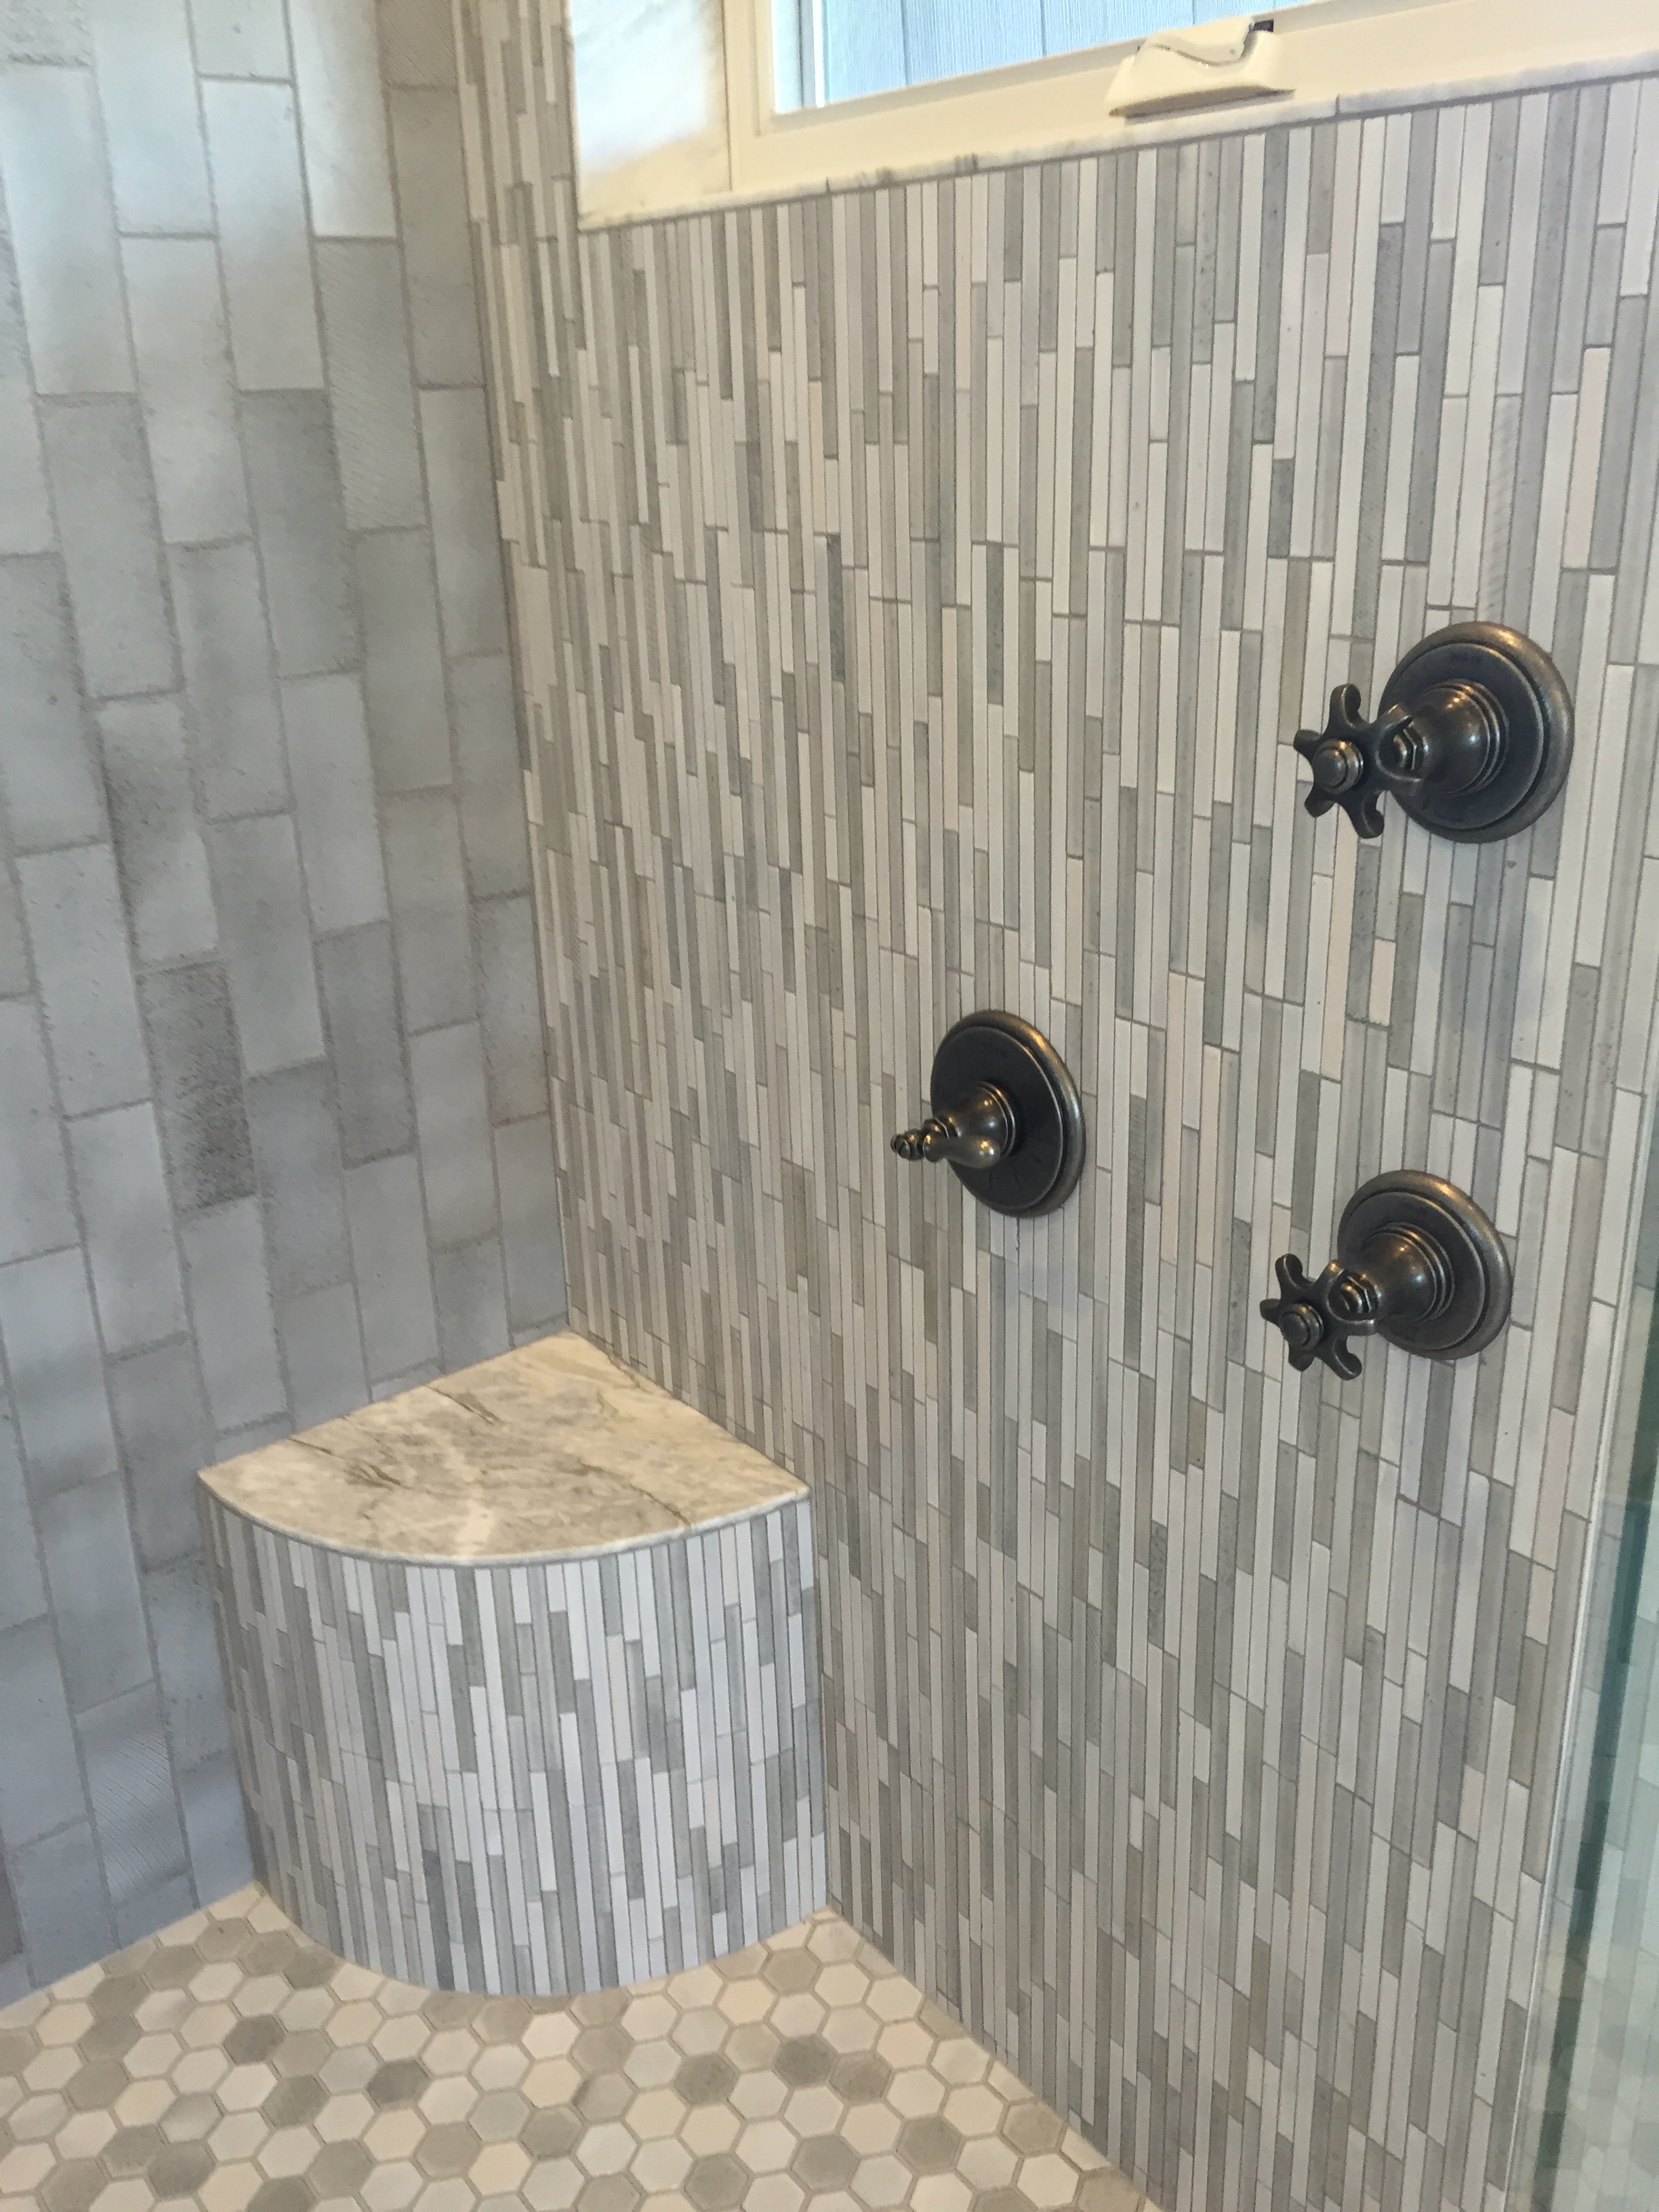 Master shower...look at all the tile patterns!